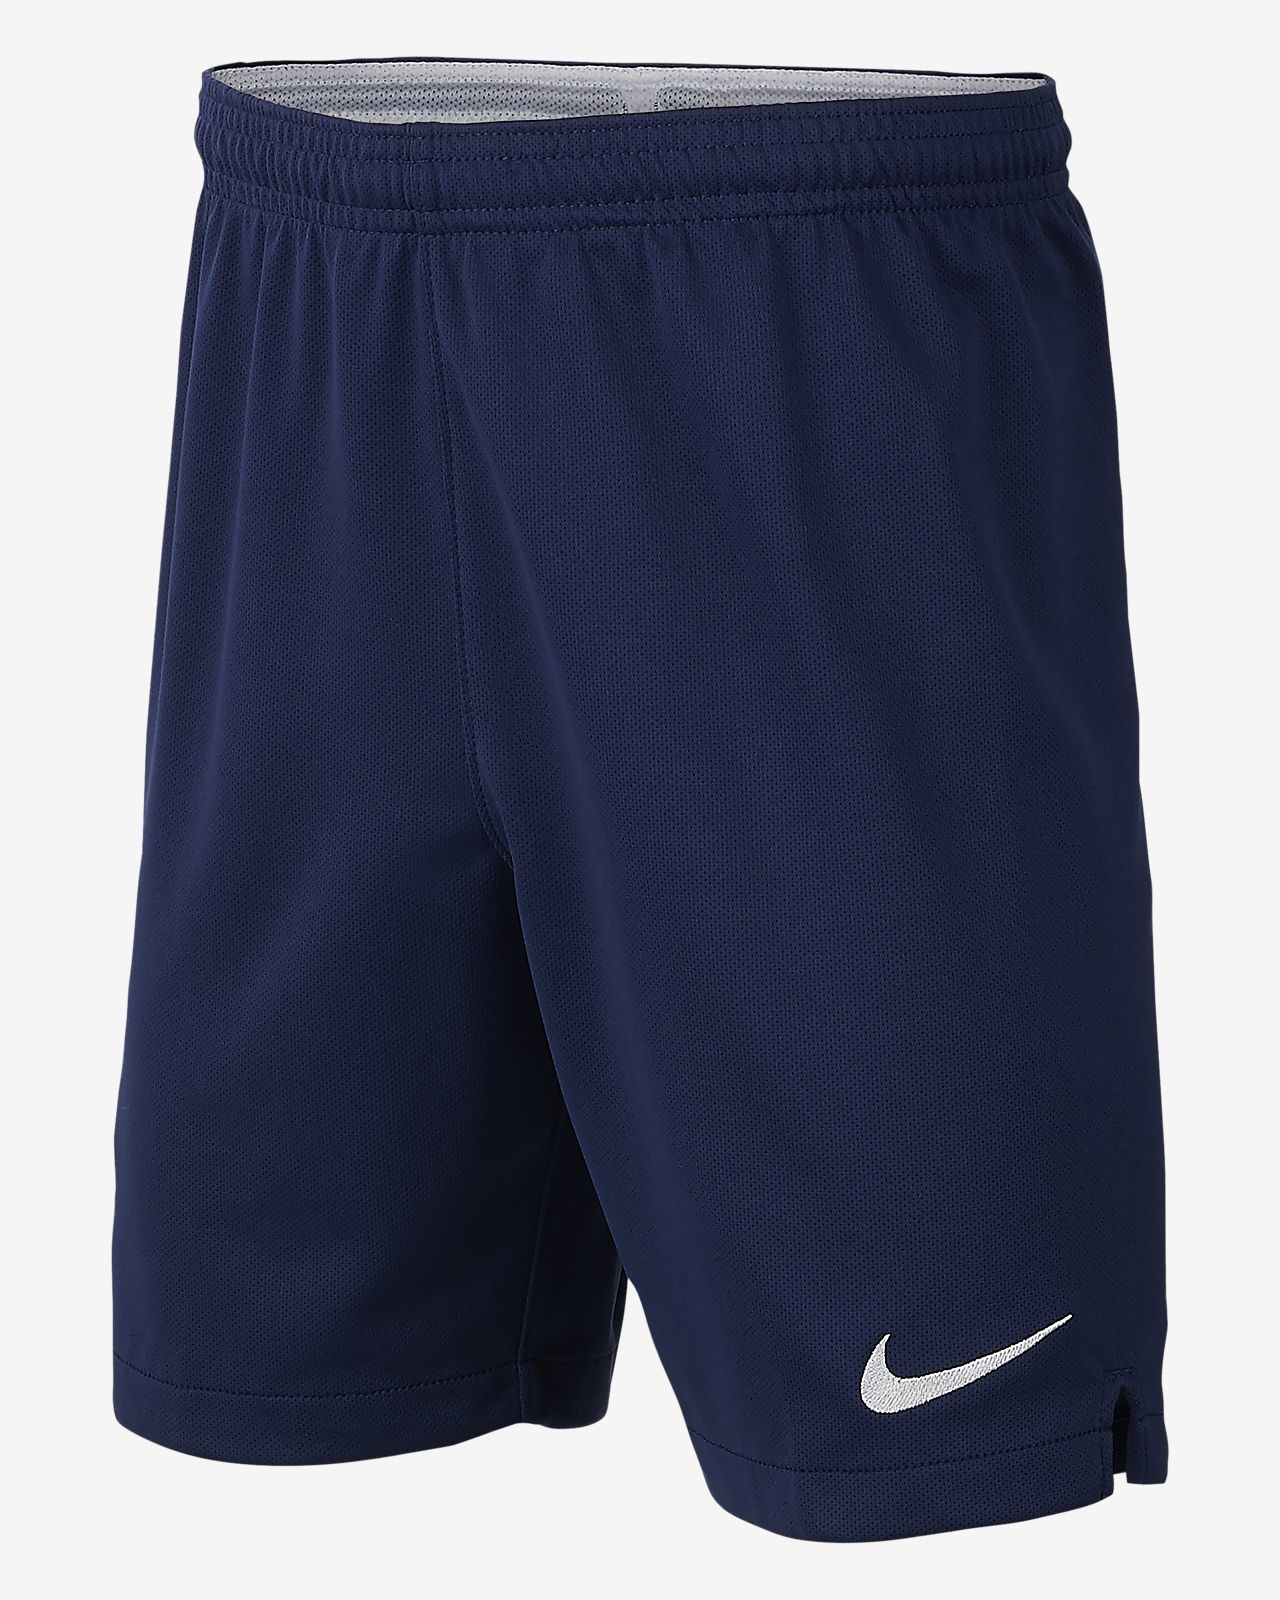 Nike NIKE JR Tottenham Home Short '19-'20